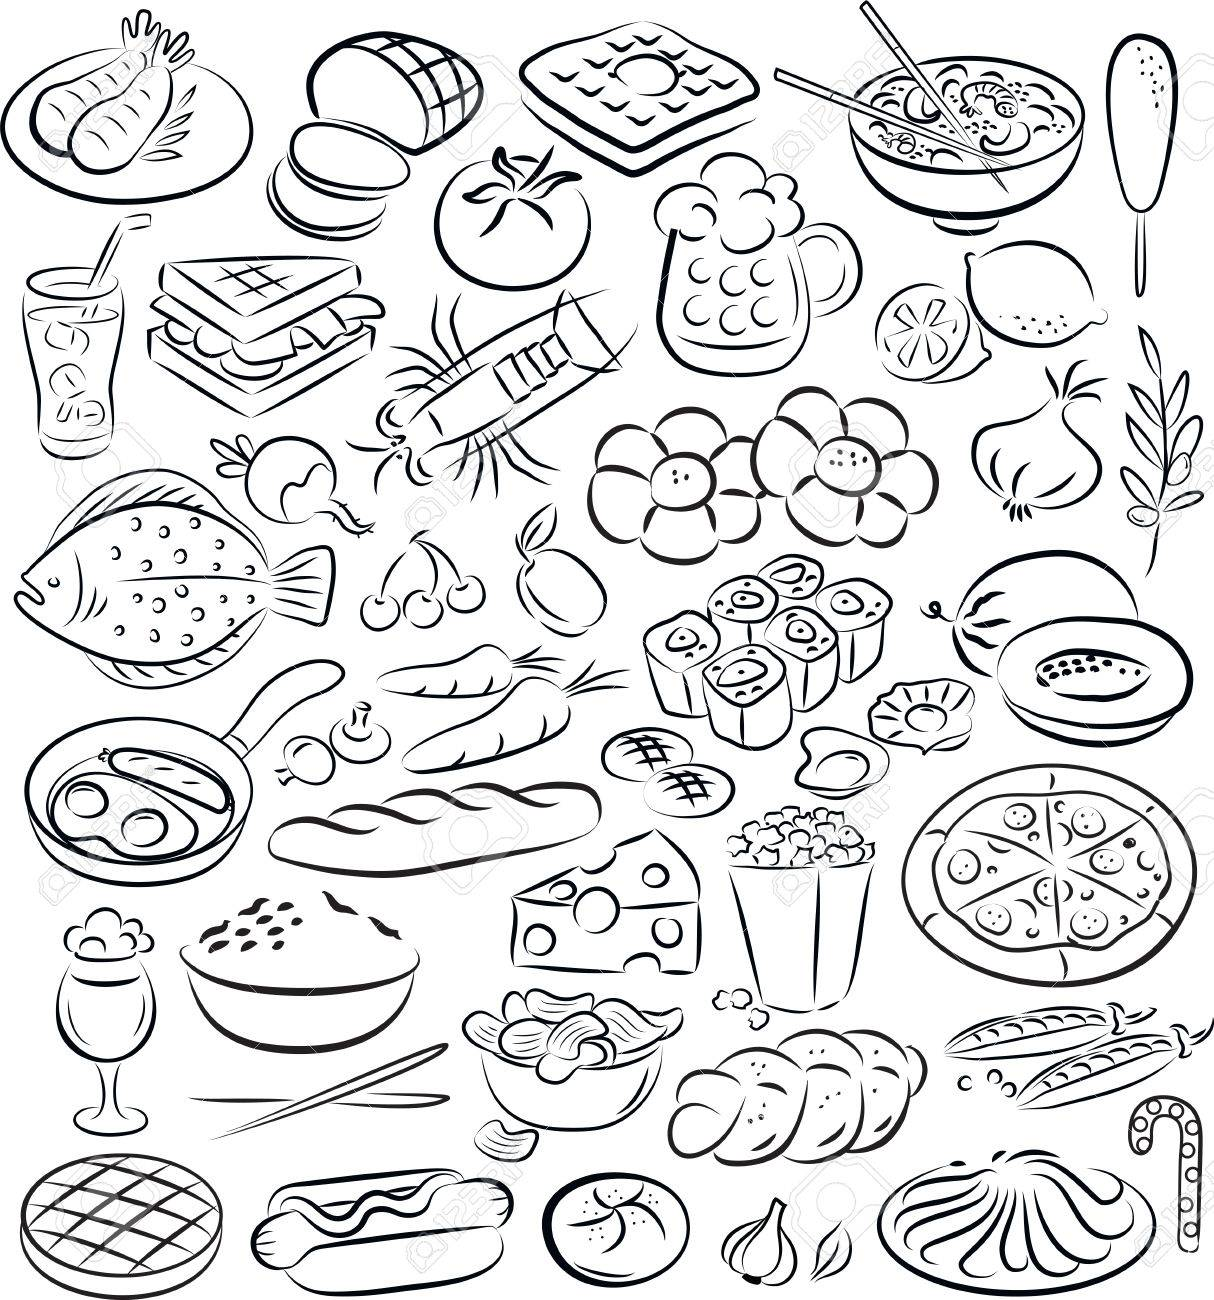 vector illustration of food collection in black and white - 26615103